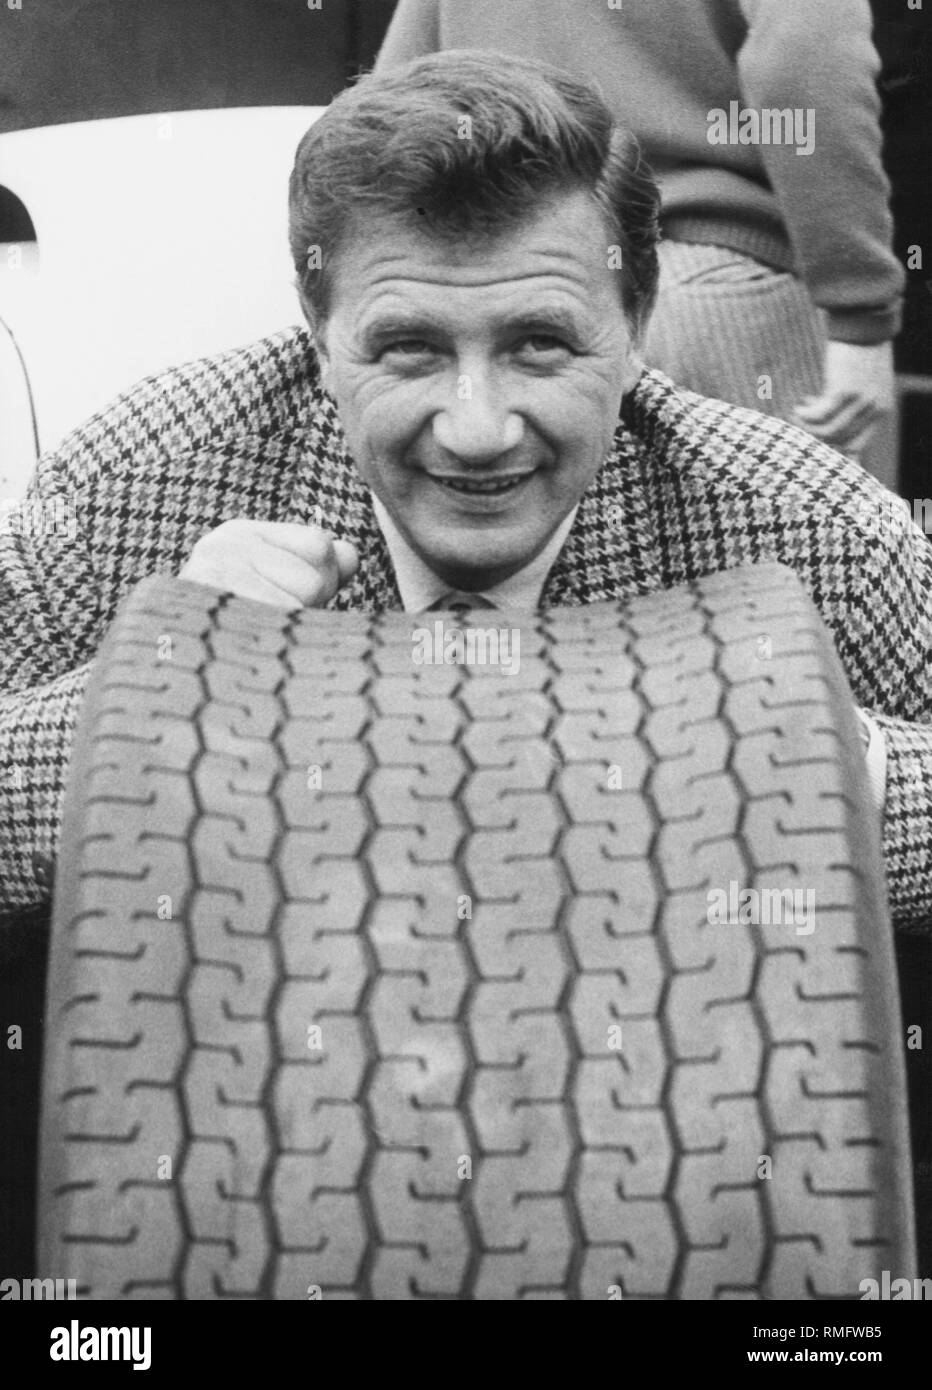 Racing driver Hans Herrmann with a wheel. - Stock Image